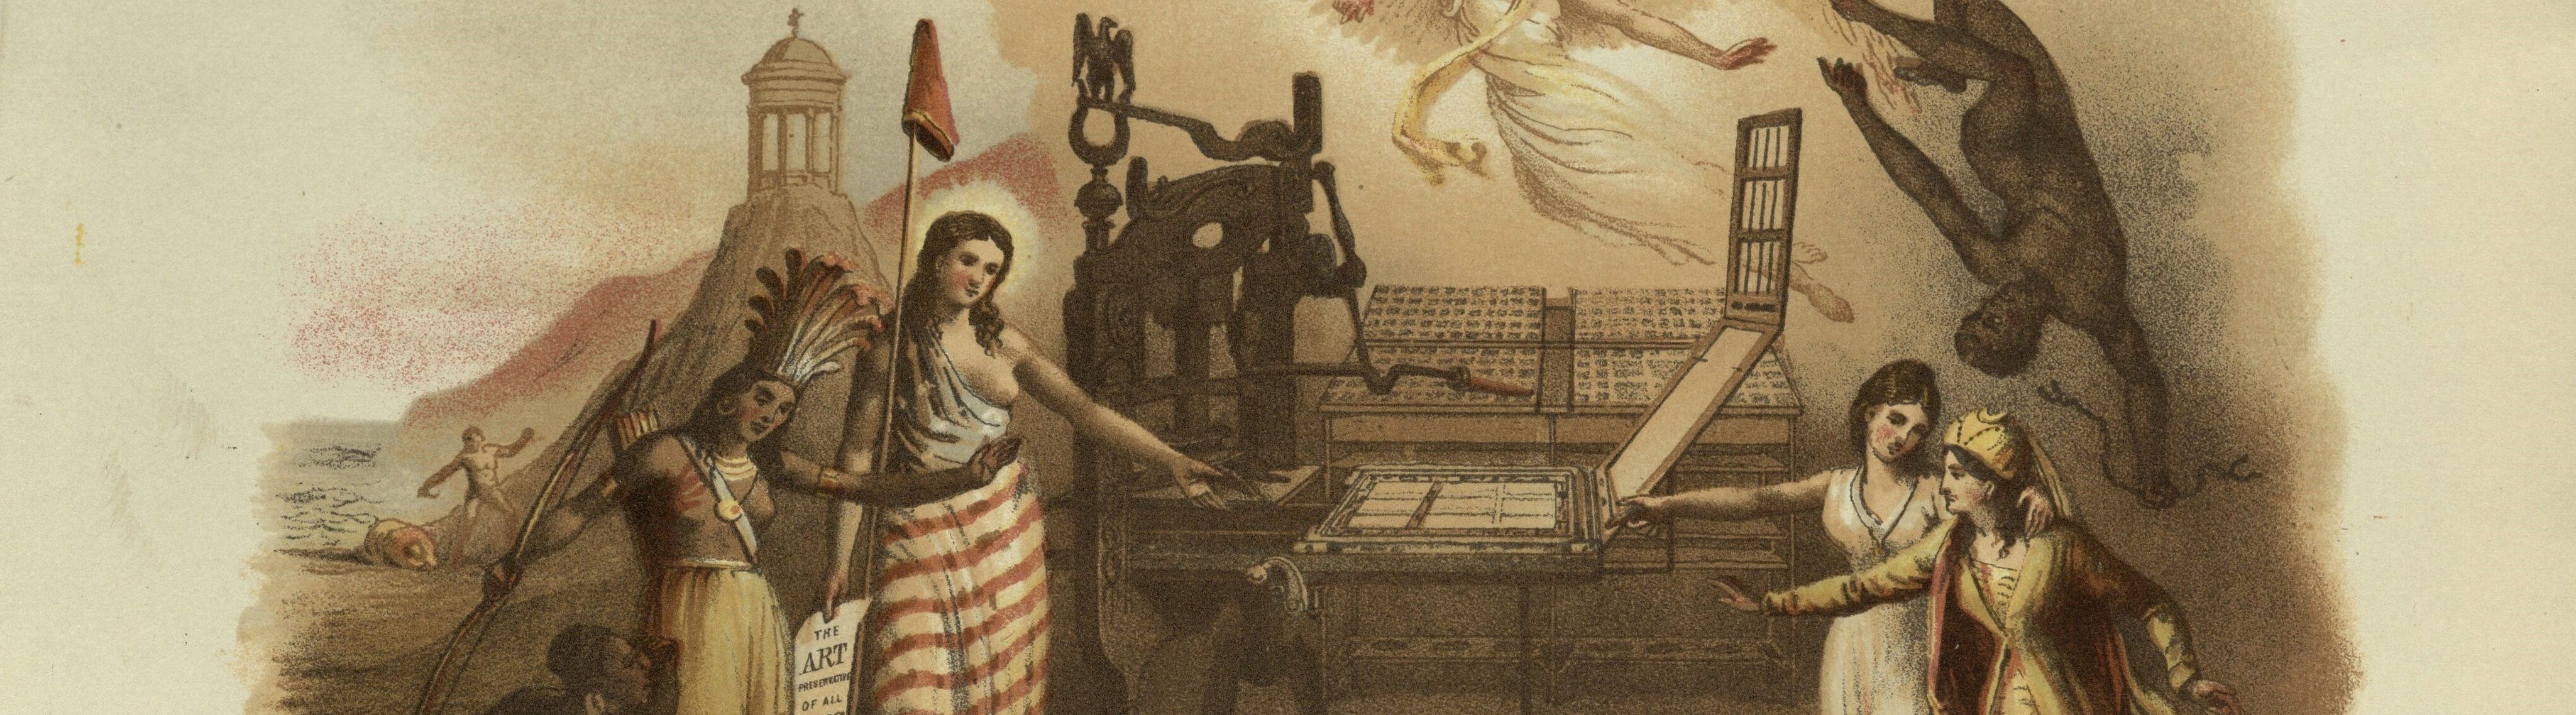 Featured image of BOOK OF THE WEEK — AMERICAN ENCYCLOPEDIA OF PRINTING : An Open Book Blog Post